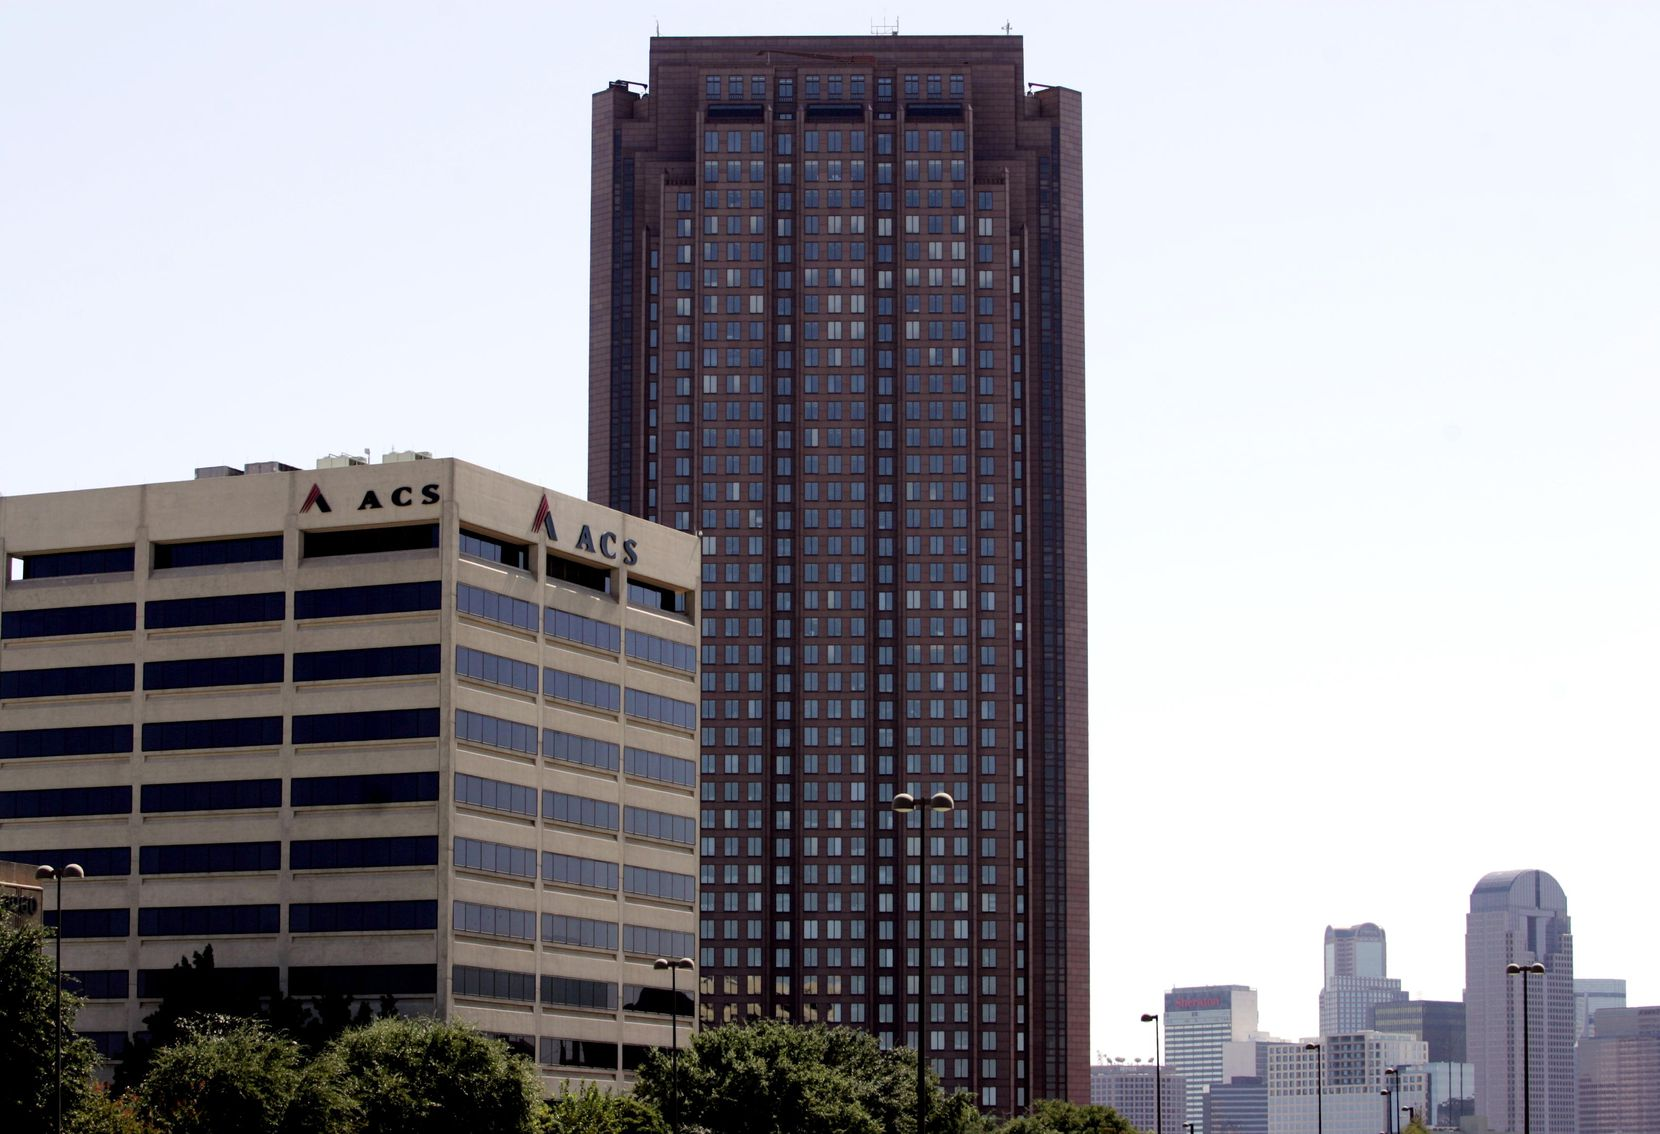 The former Affiliated Computer Services building is shown in front of the CityPlace tower.